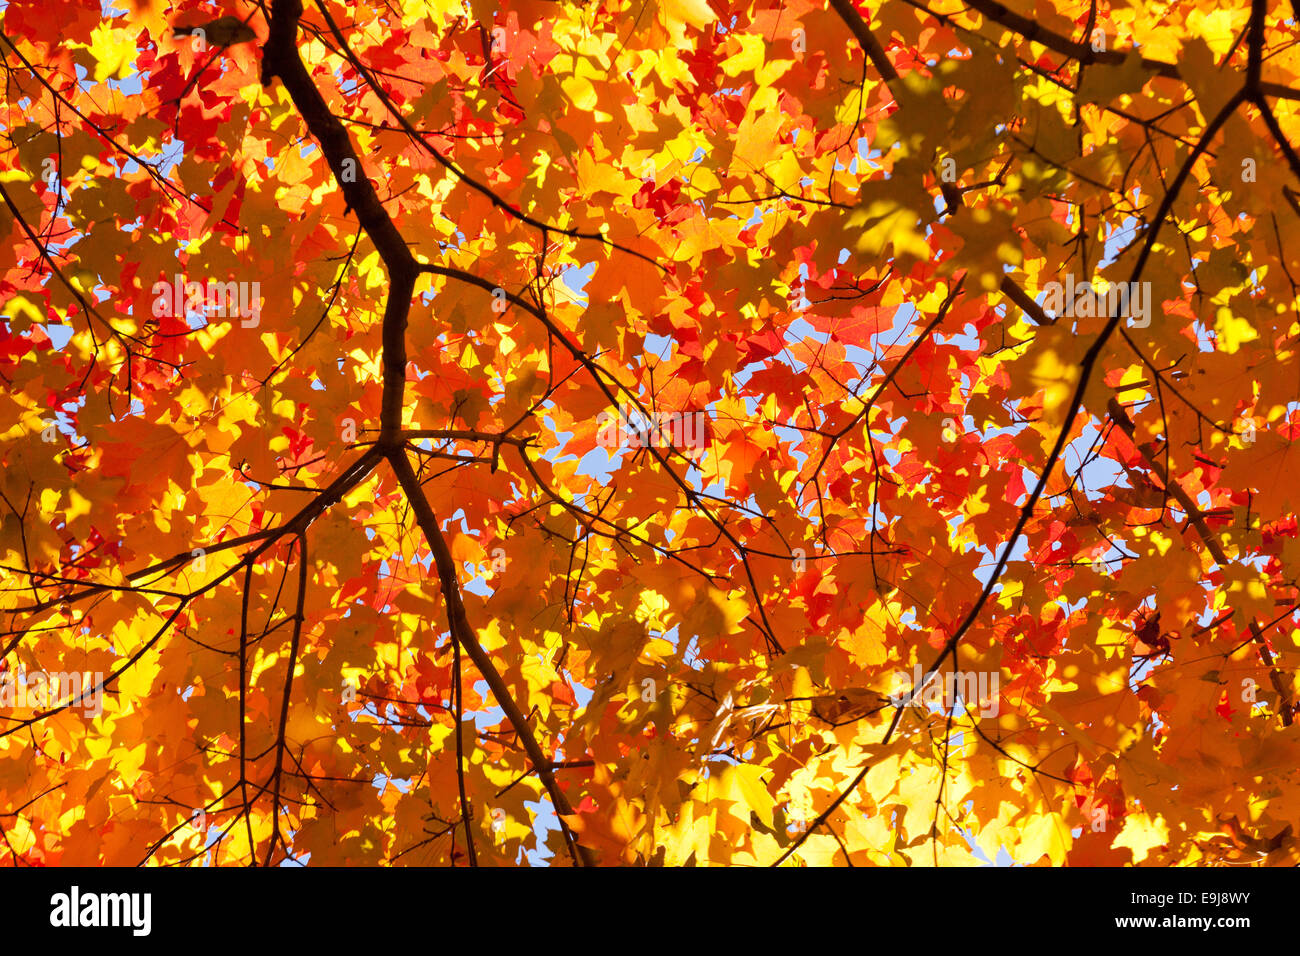 how to fix the color of leaves